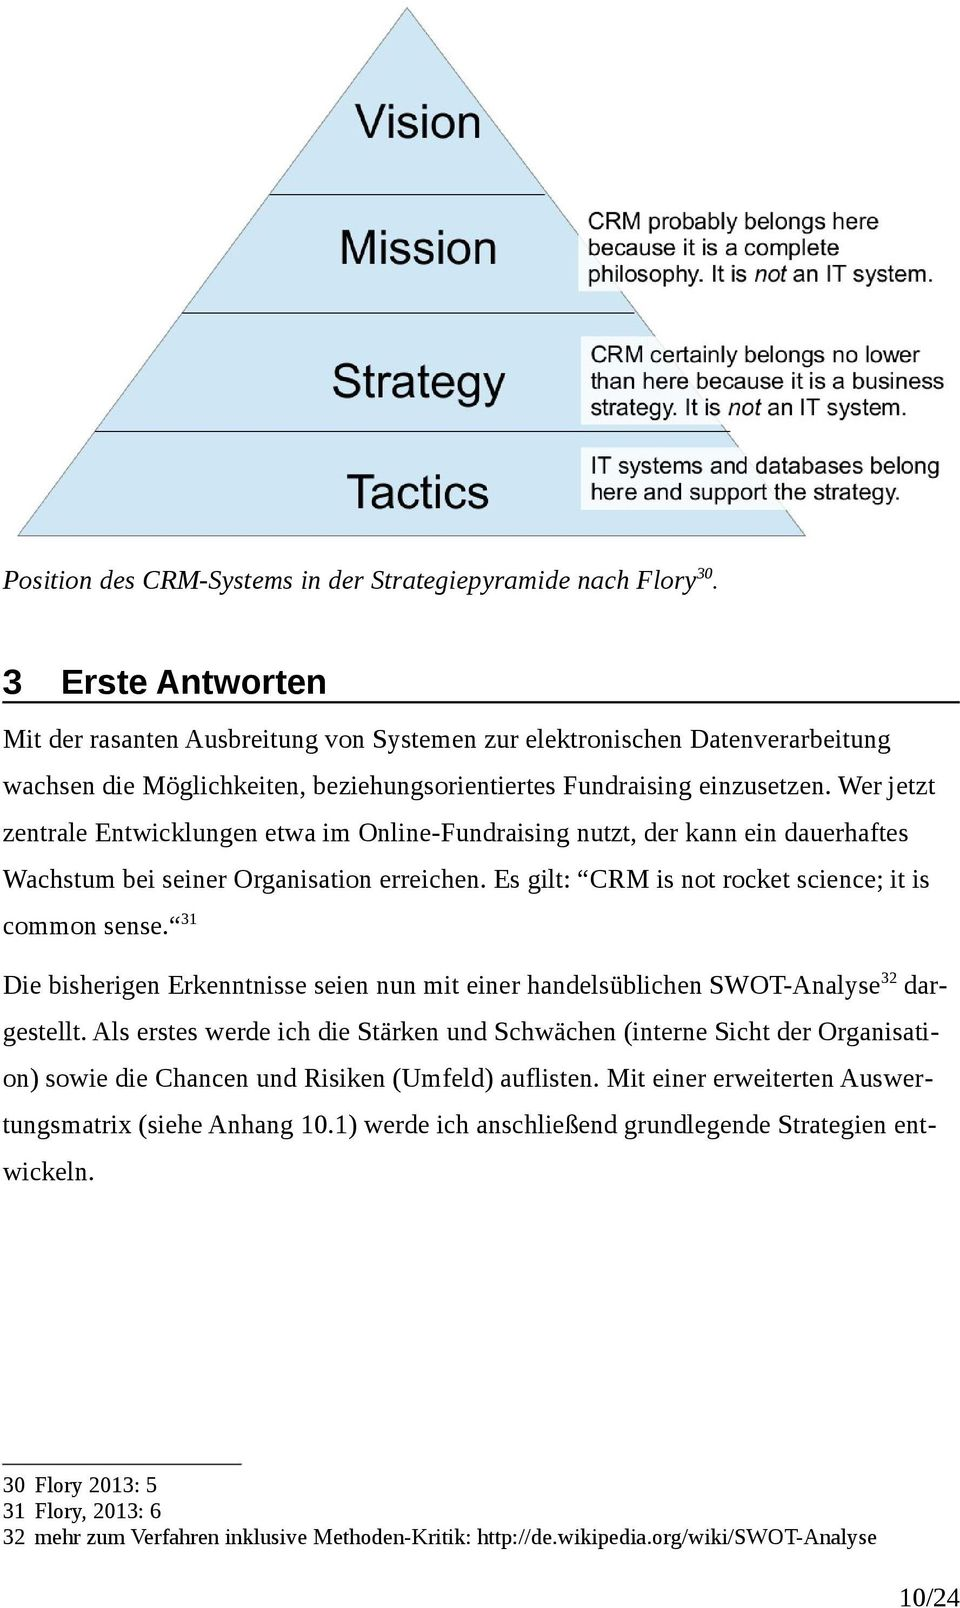 Wer jetzt zentrale Entwicklungen etwa im Online-Fundraising nutzt, der kann ein dauerhaftes Wachstum bei seiner Organisation erreichen. Es gilt: CRM is not rocket science; it is common sense.